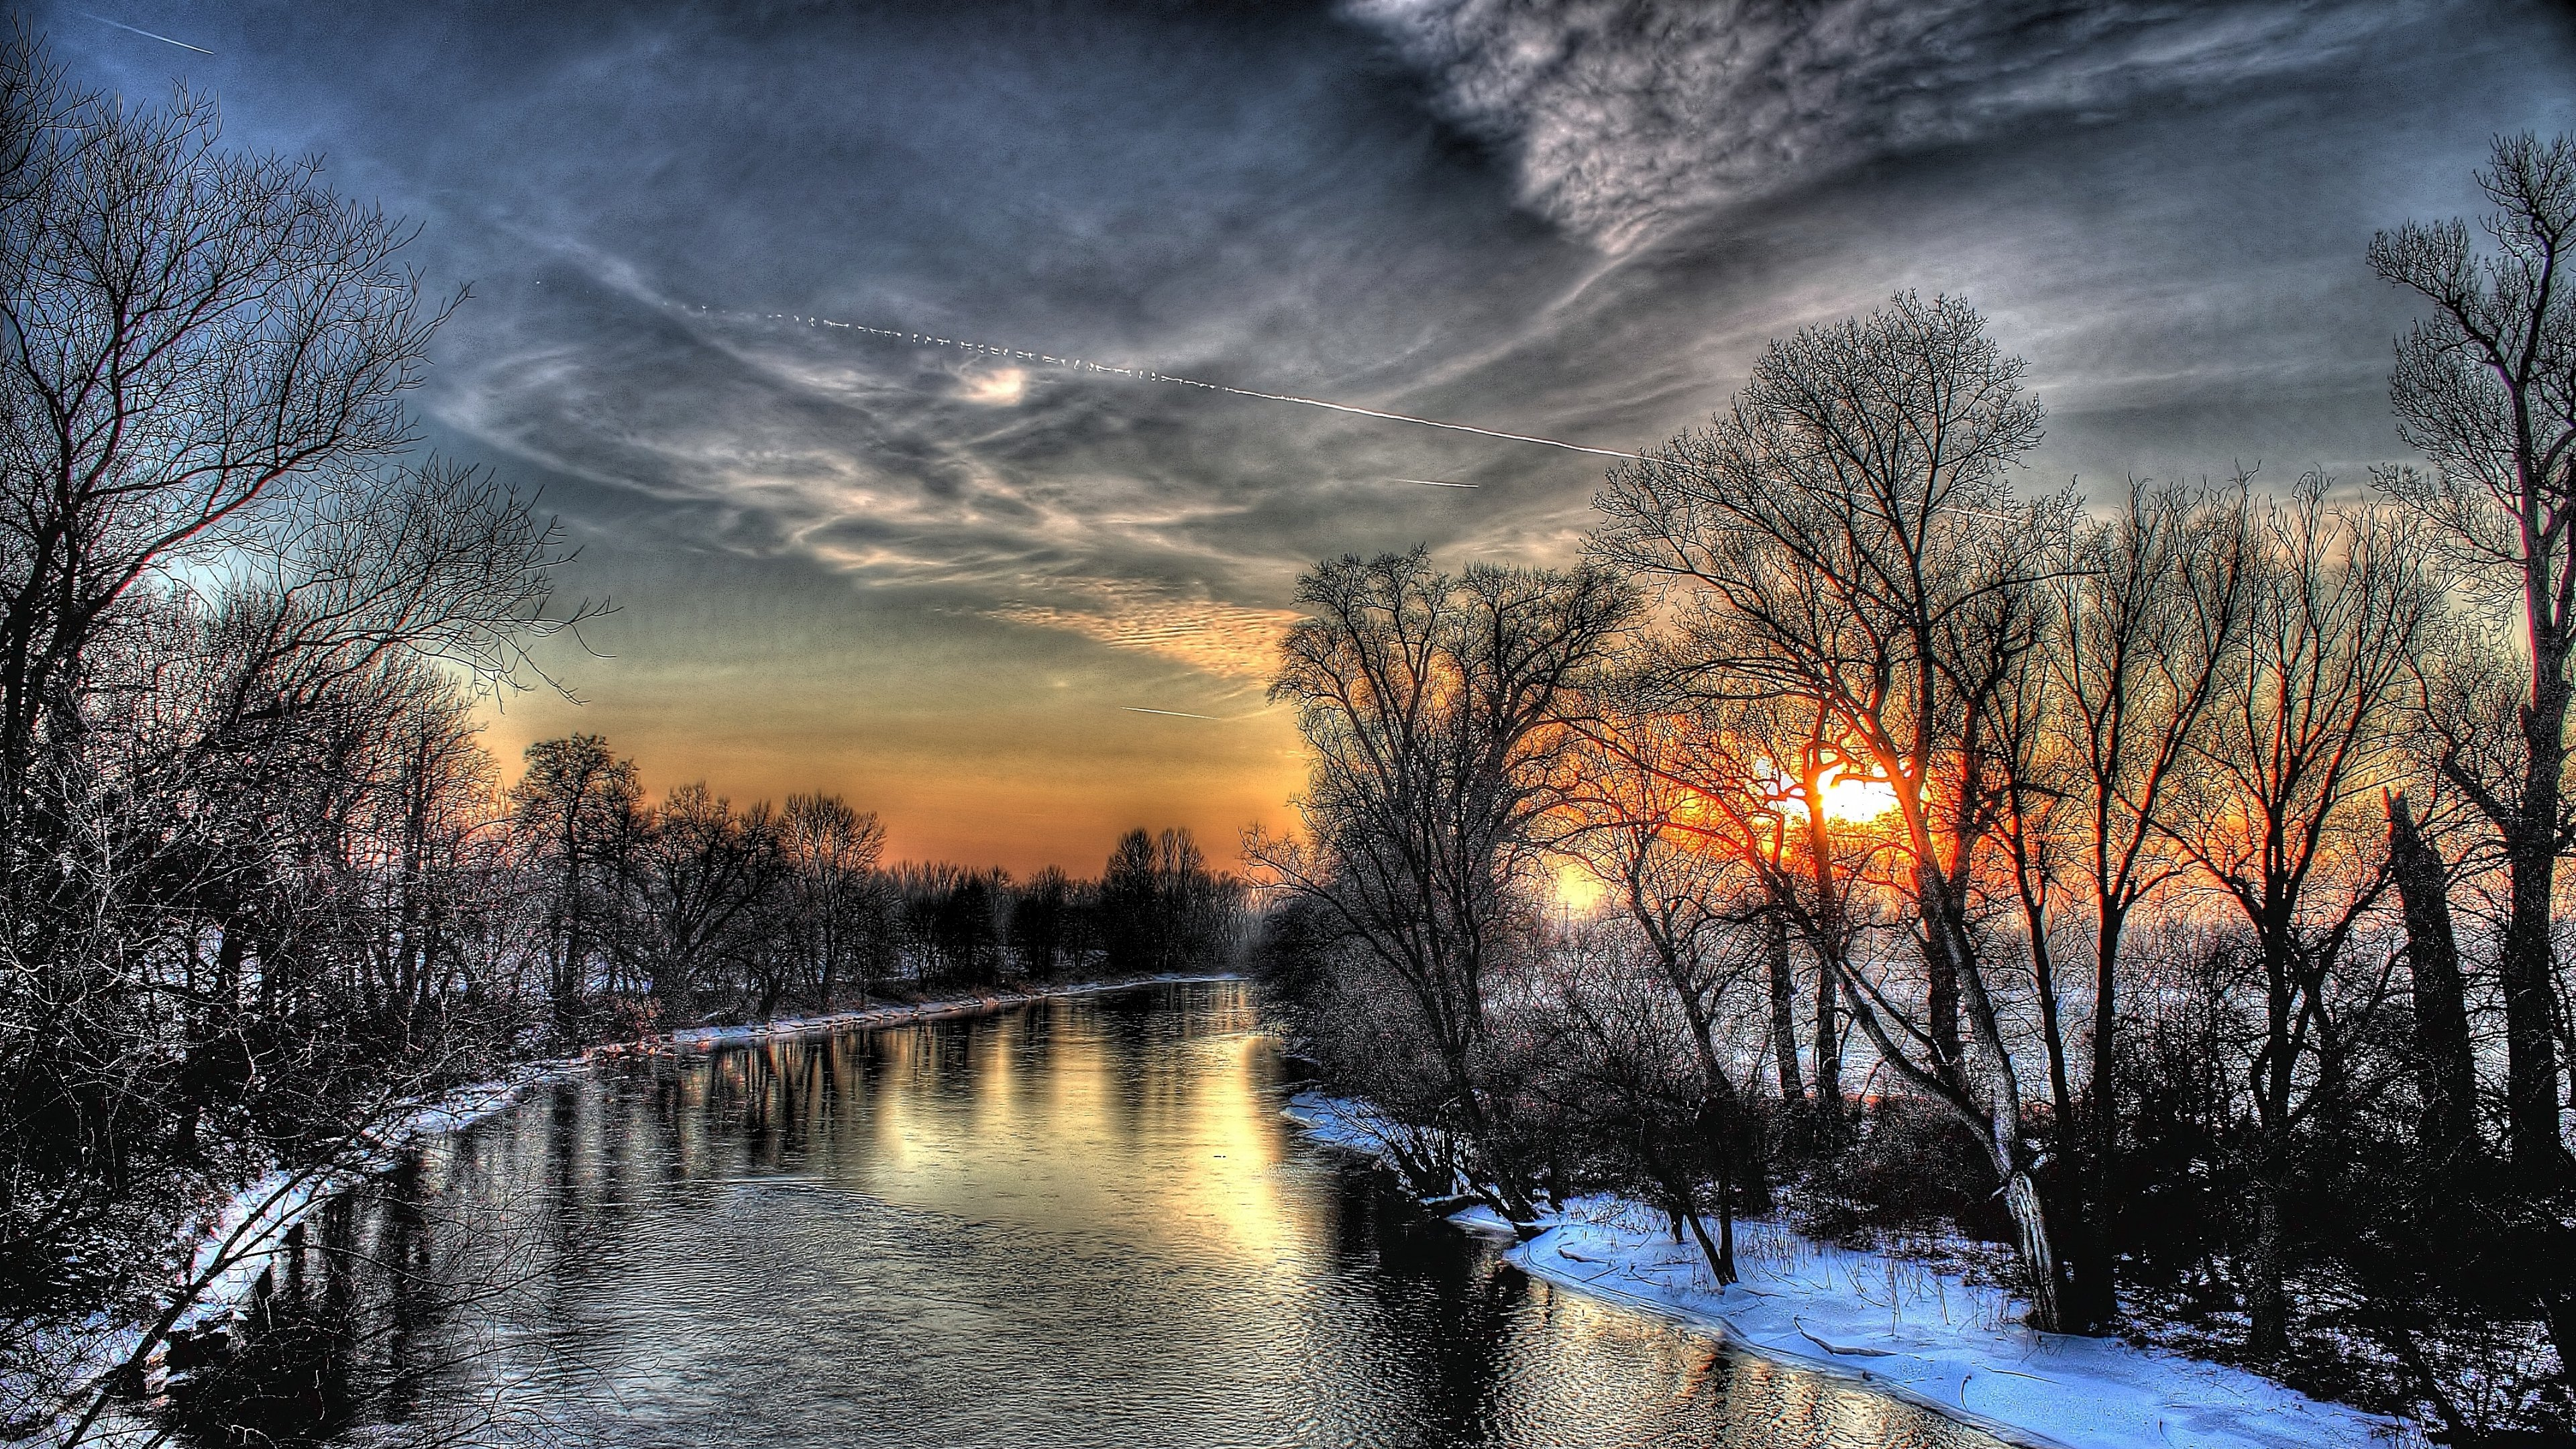 Download Wallpaper 3840x2160 sunset winter river sky hdr 4K Ultra 3840x2160